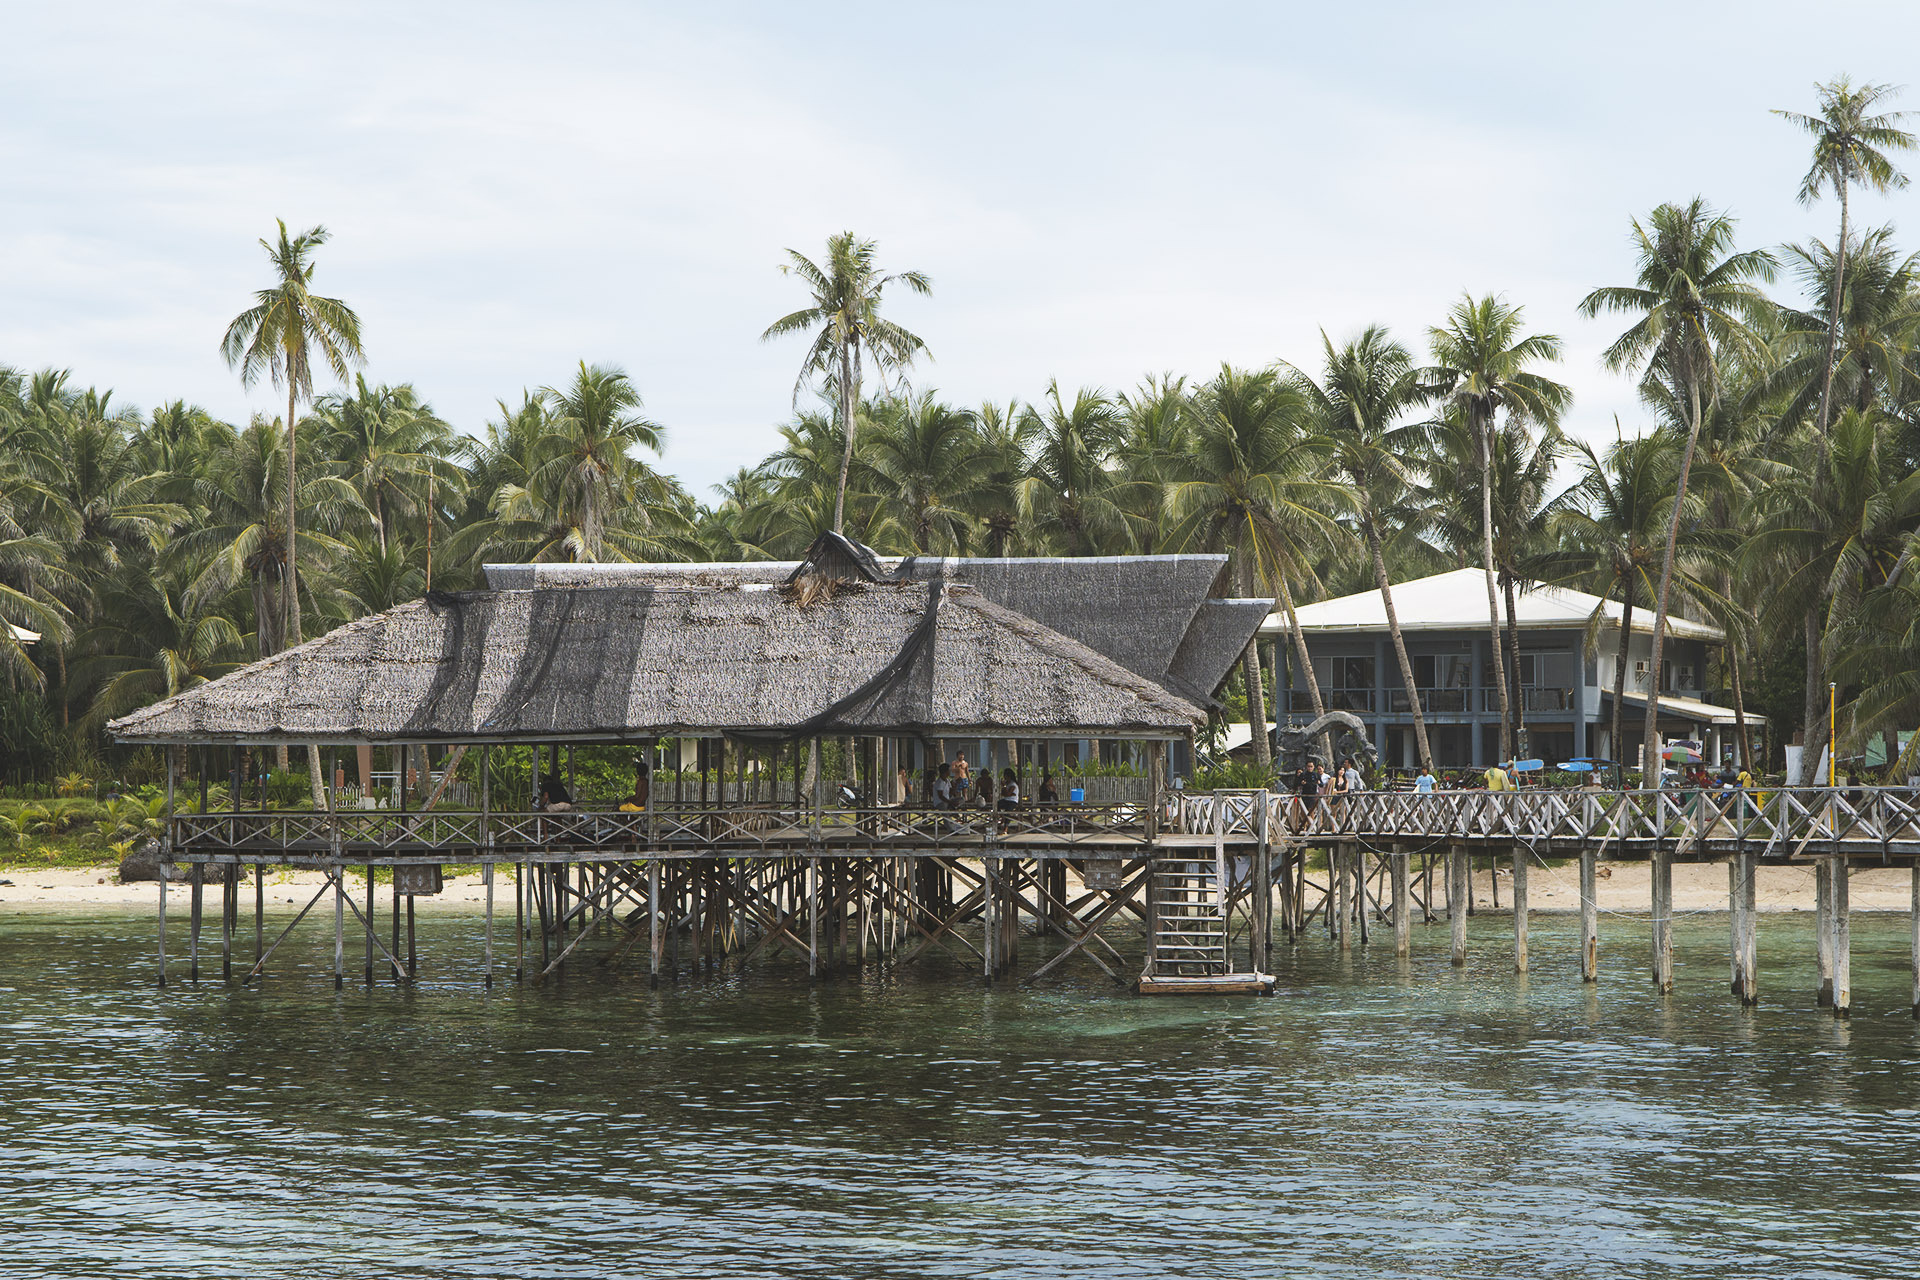 Siargao is a popular destination for surfing around the world.